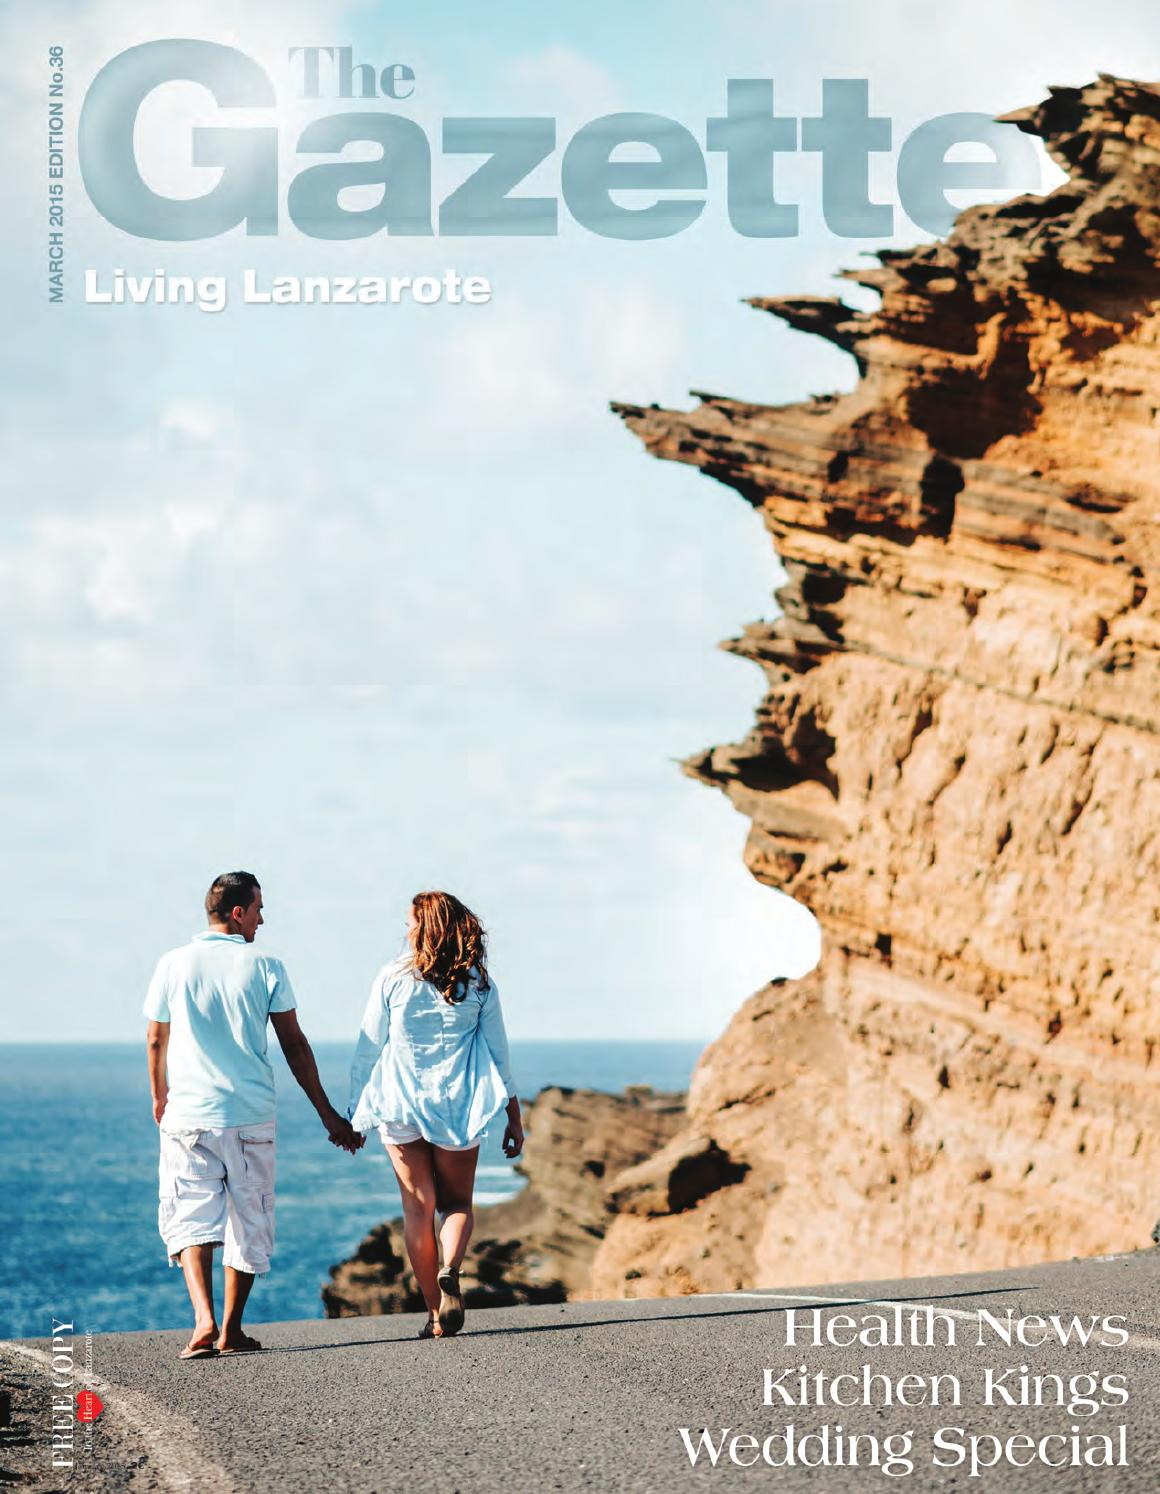 Sofas Ikea Lanzarote The Lanzarote Gazette March 2015 By The Lanzarote Gazette